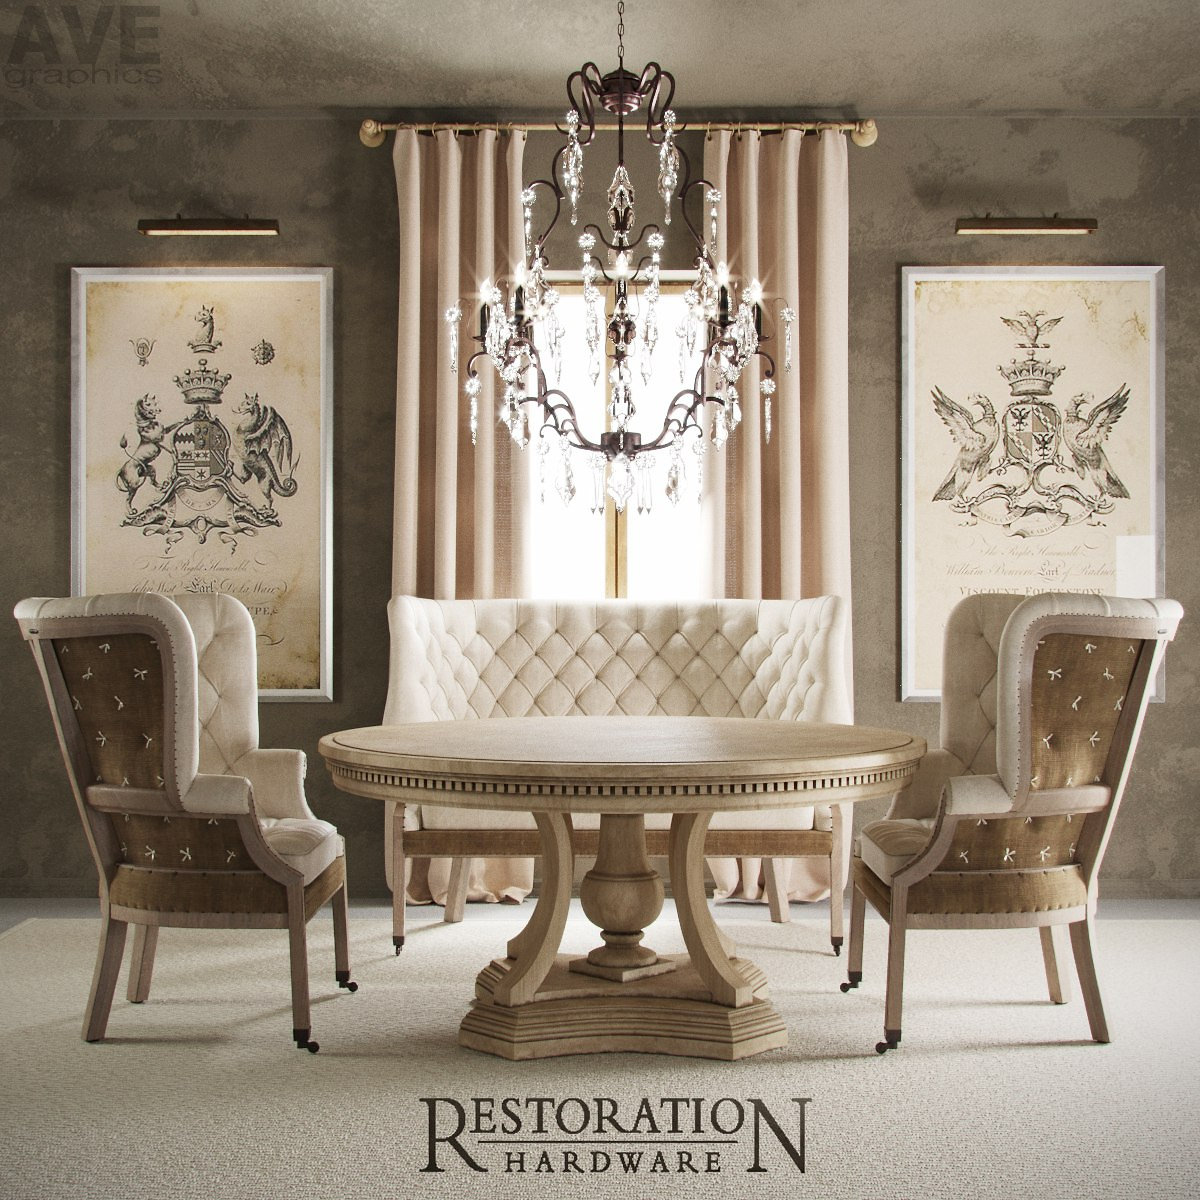 chandeliers  rh english 19th wing chair rh english 19th wing settee rh restoration hardware